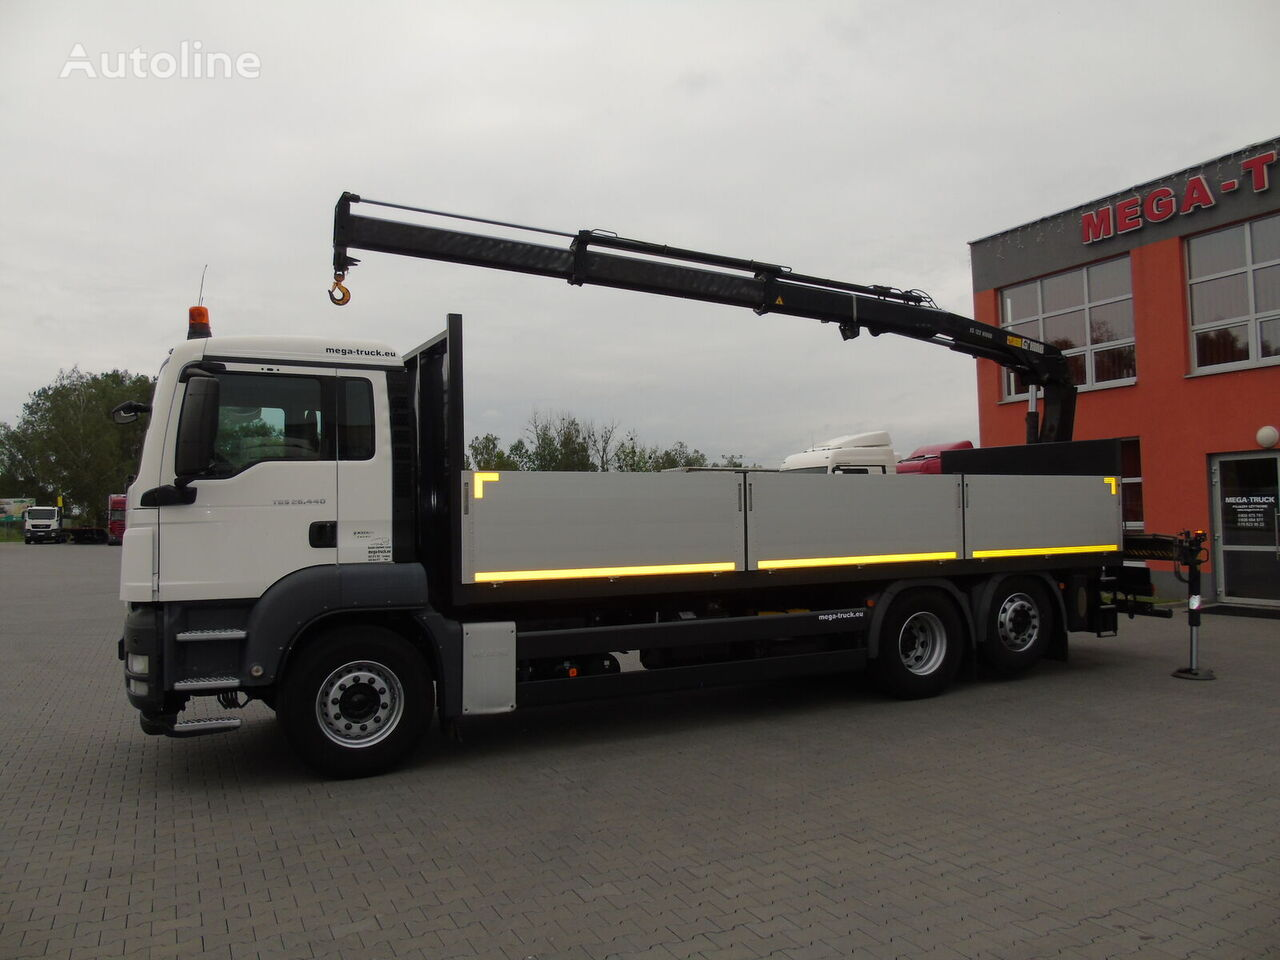 MAN  TGS 26.440 6X2 HIAB XS 122 IMPORT FRANCE mobile crane